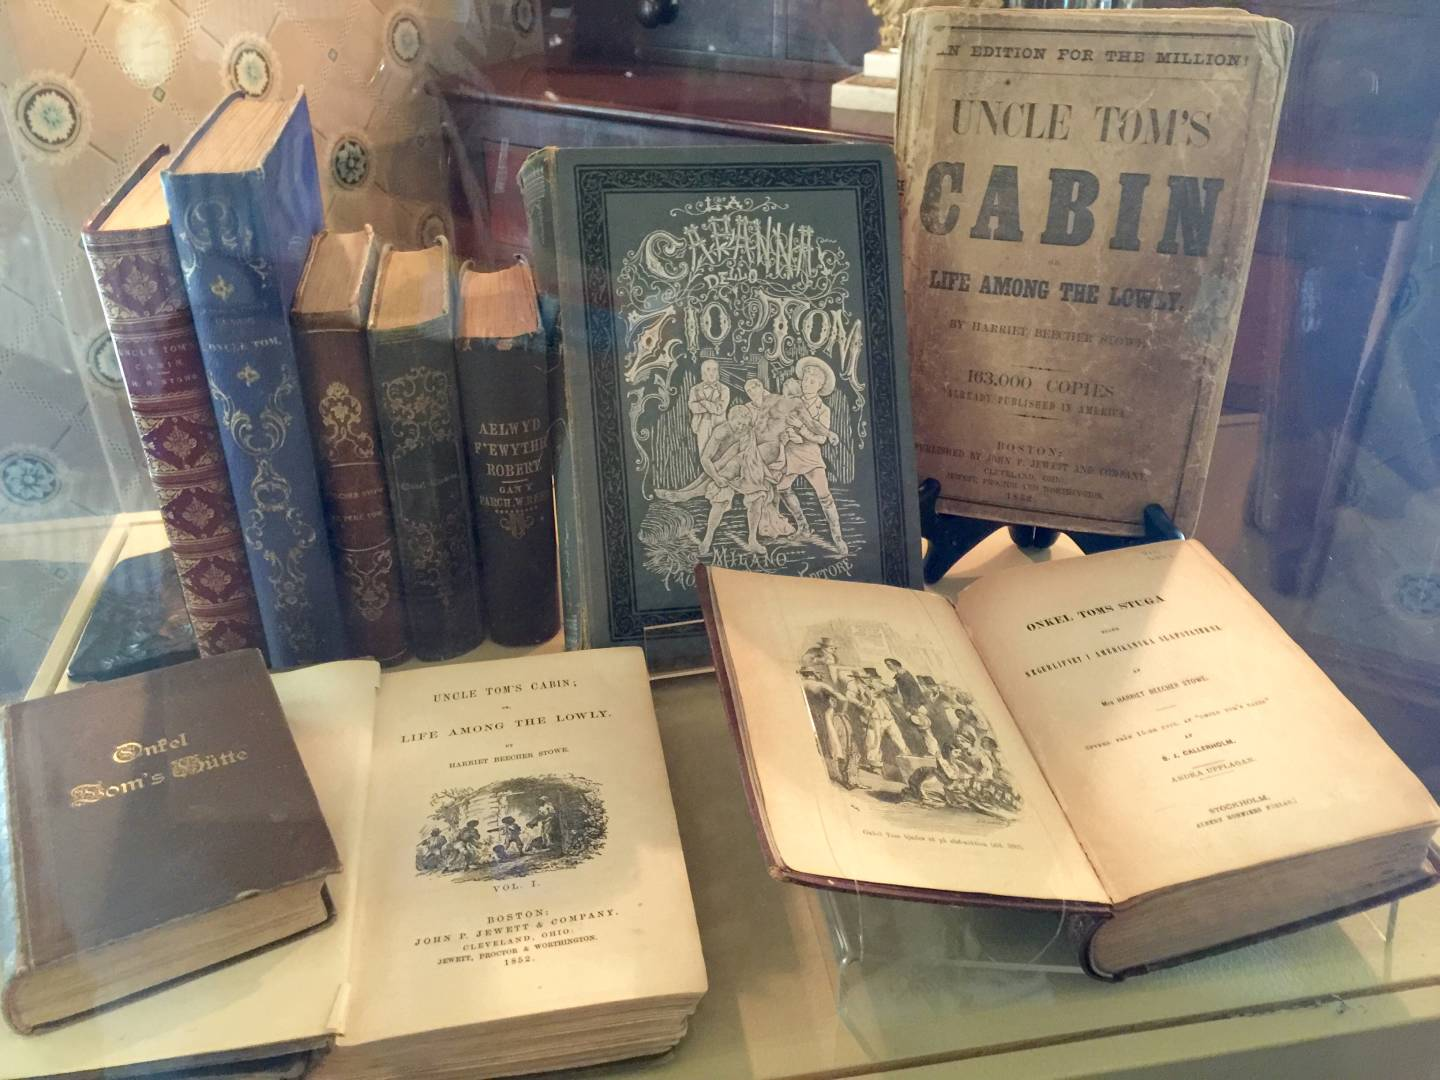 Uncle Tom's Cabin's first editions